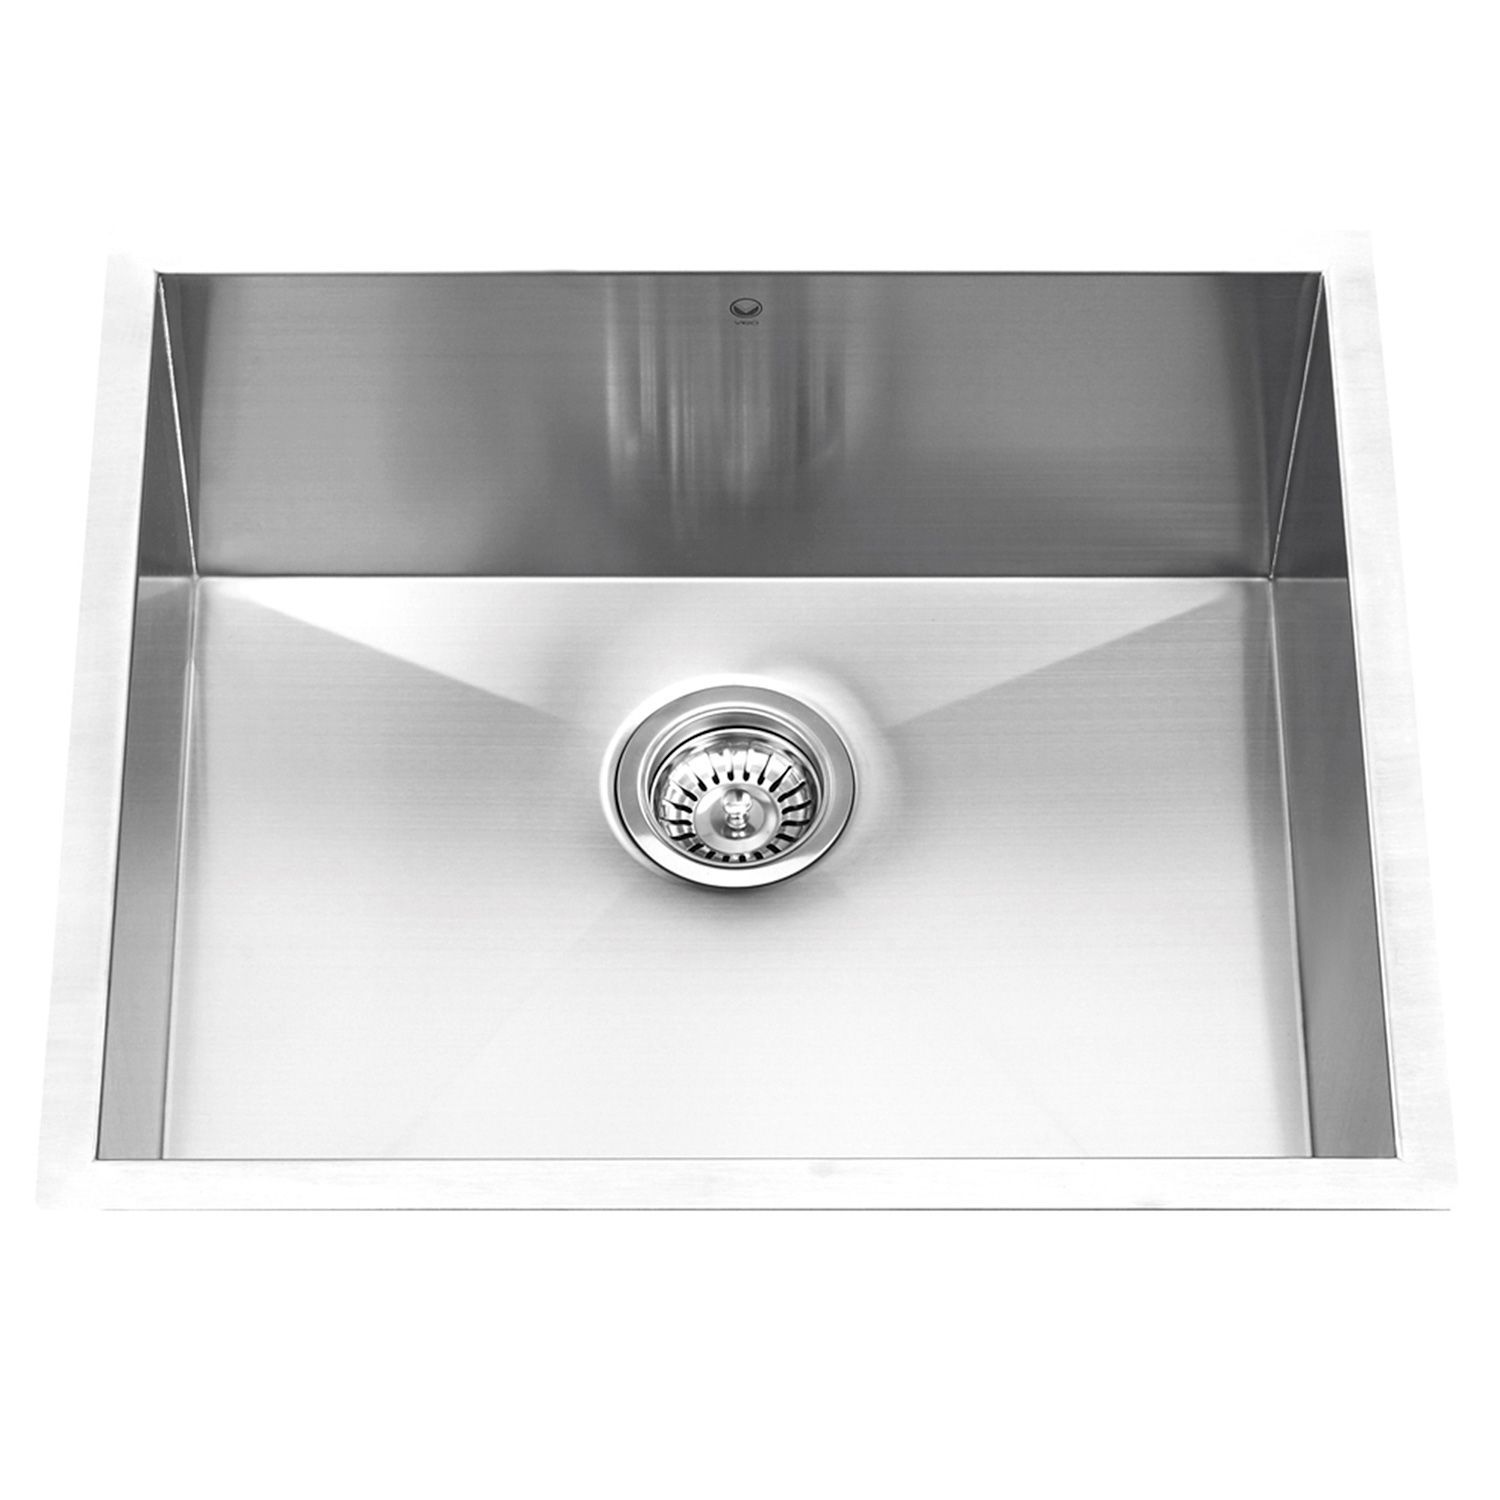 Vigo 23 Undermount Stainless Steel 16 Gauge Single Bowl Kitchen Sink Sam S Cl Single Bowl Kitchen Sink Stainless Steel Kitchen Sink Undermount Kitchen Sinks